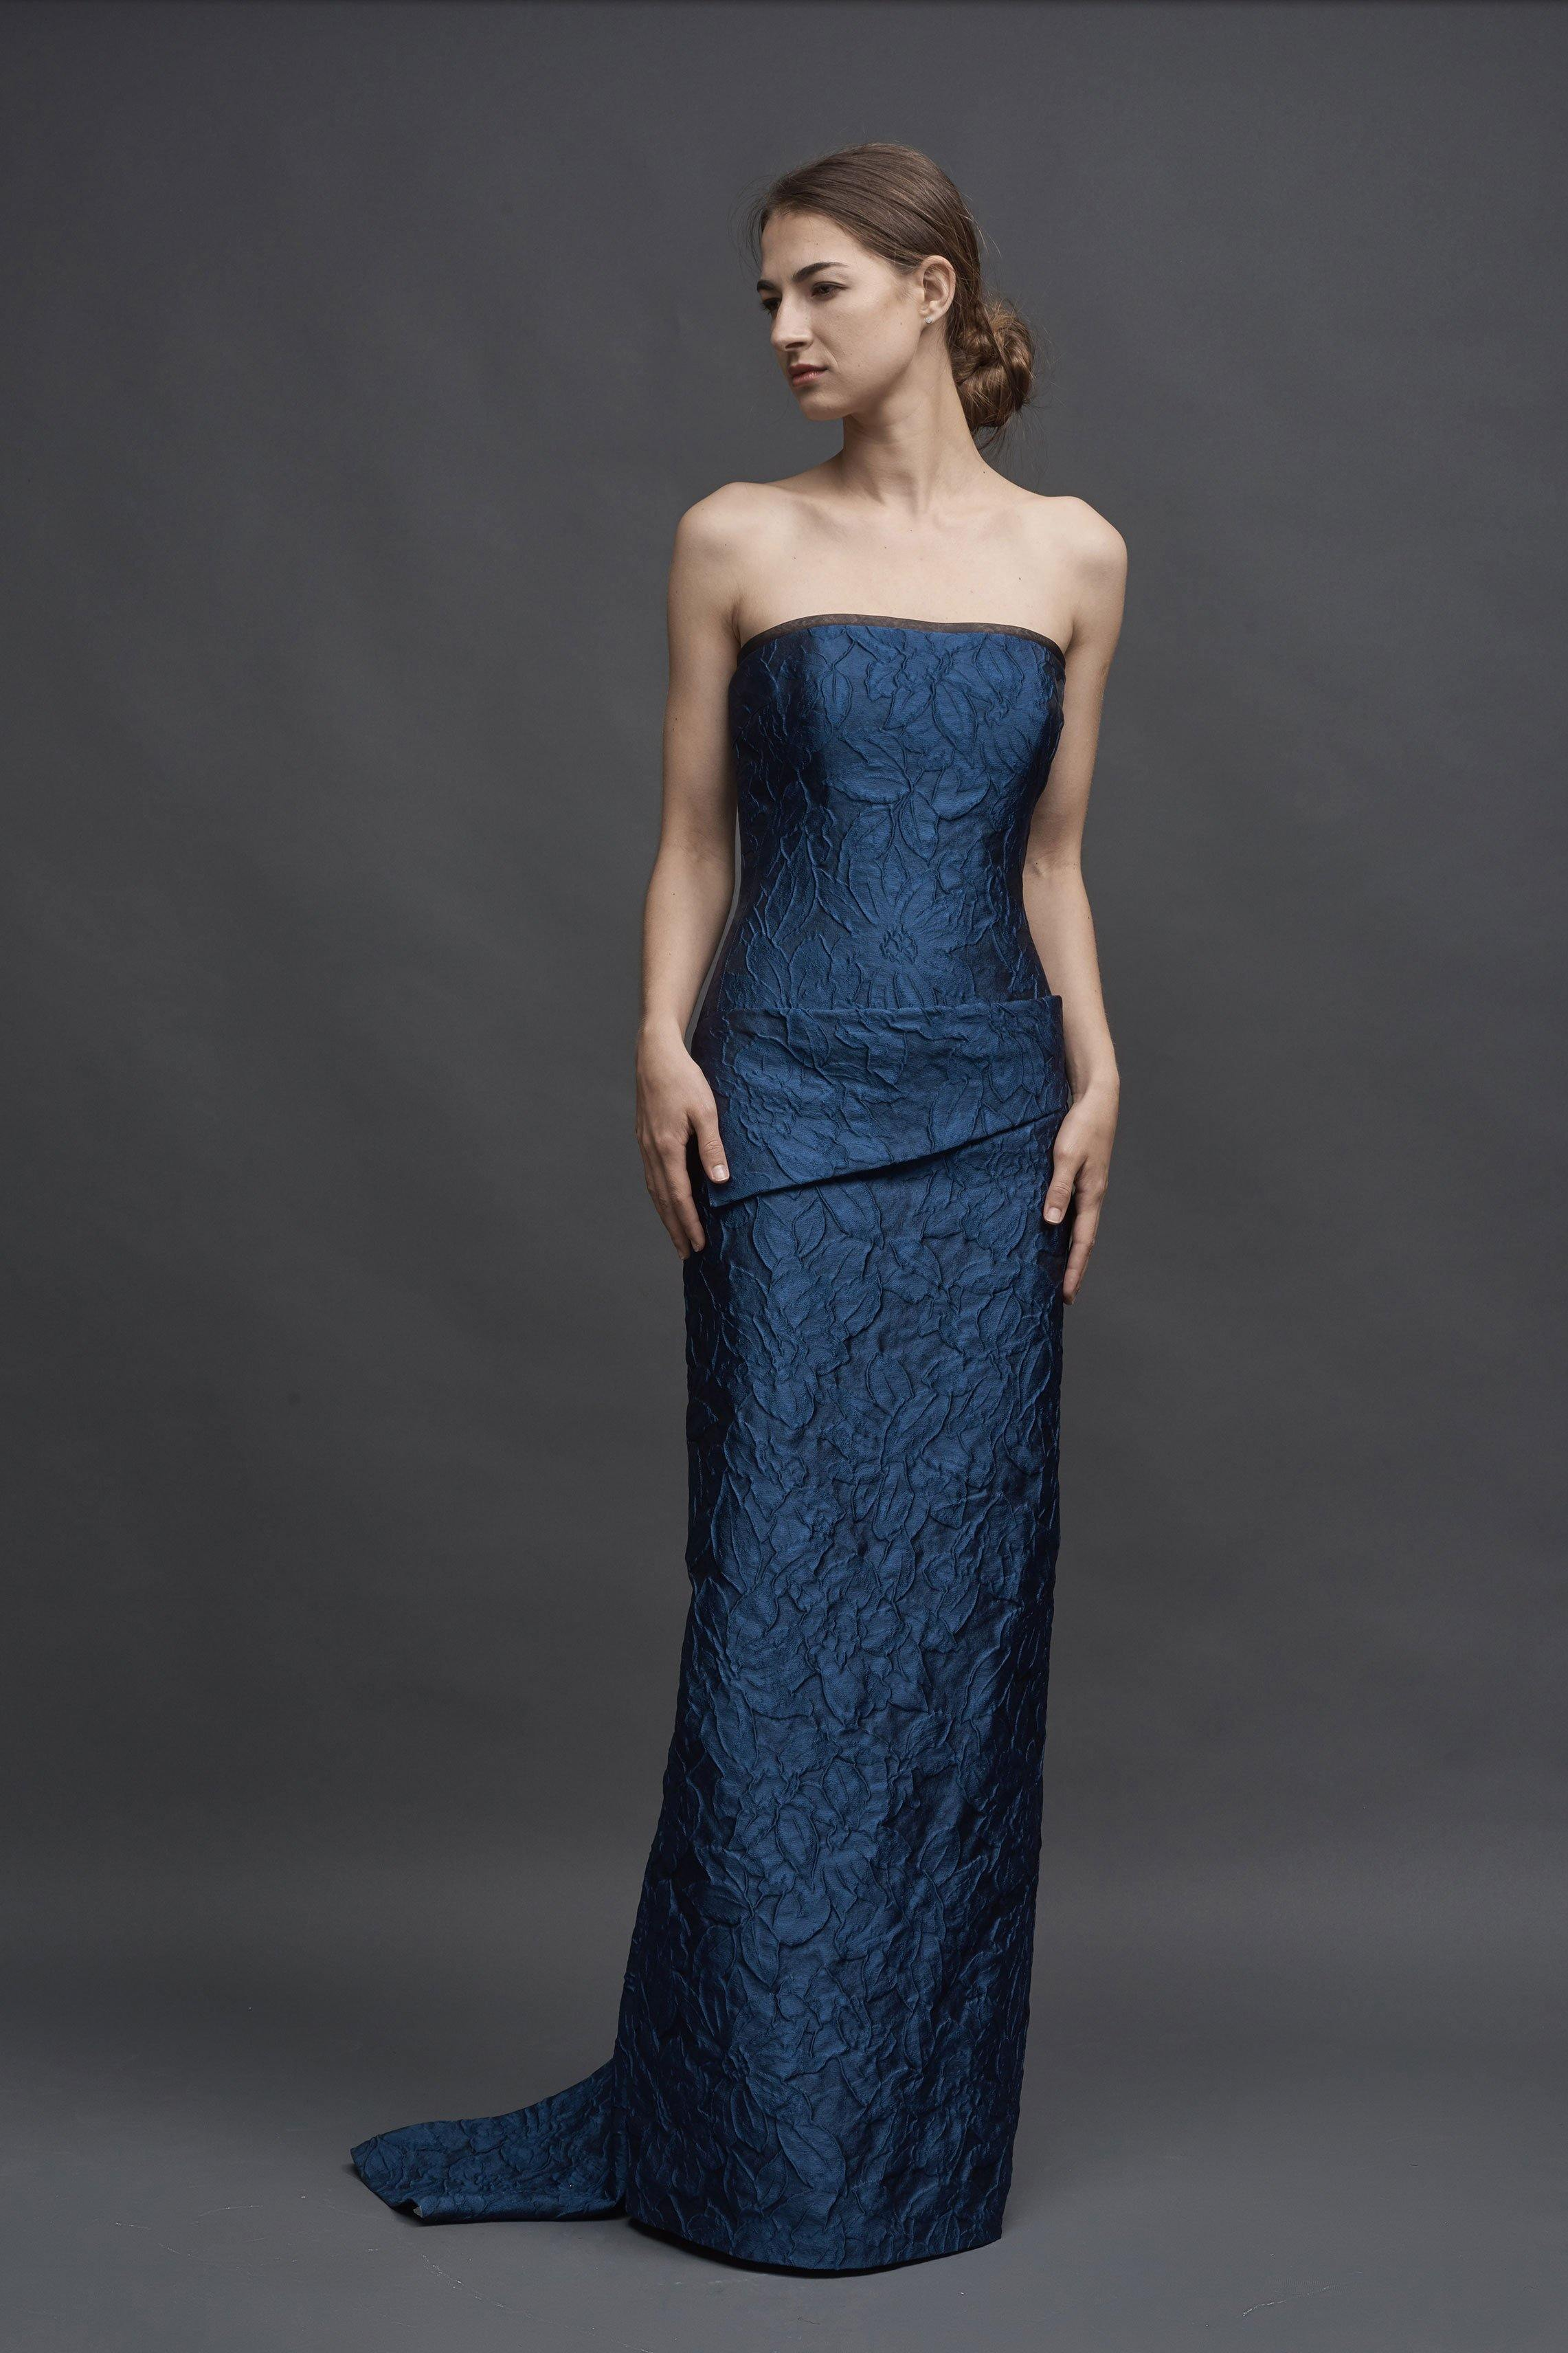 Cloquet Hand-Draped Slim, Strapless Gown, Fishtail Hem Detail - Mieka Boutique